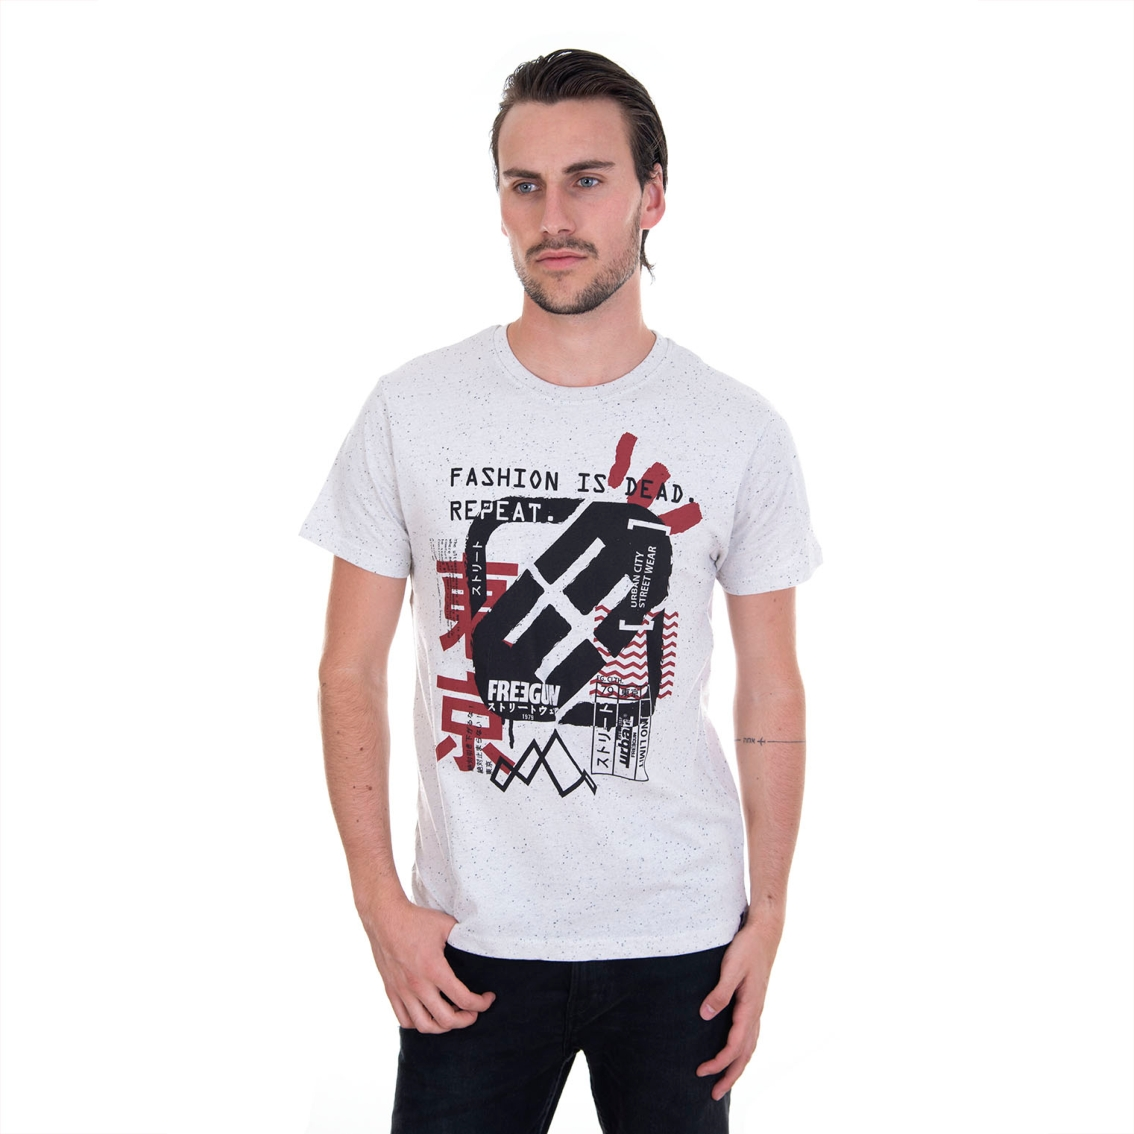 T-shirt homme fashion is dead (photo)